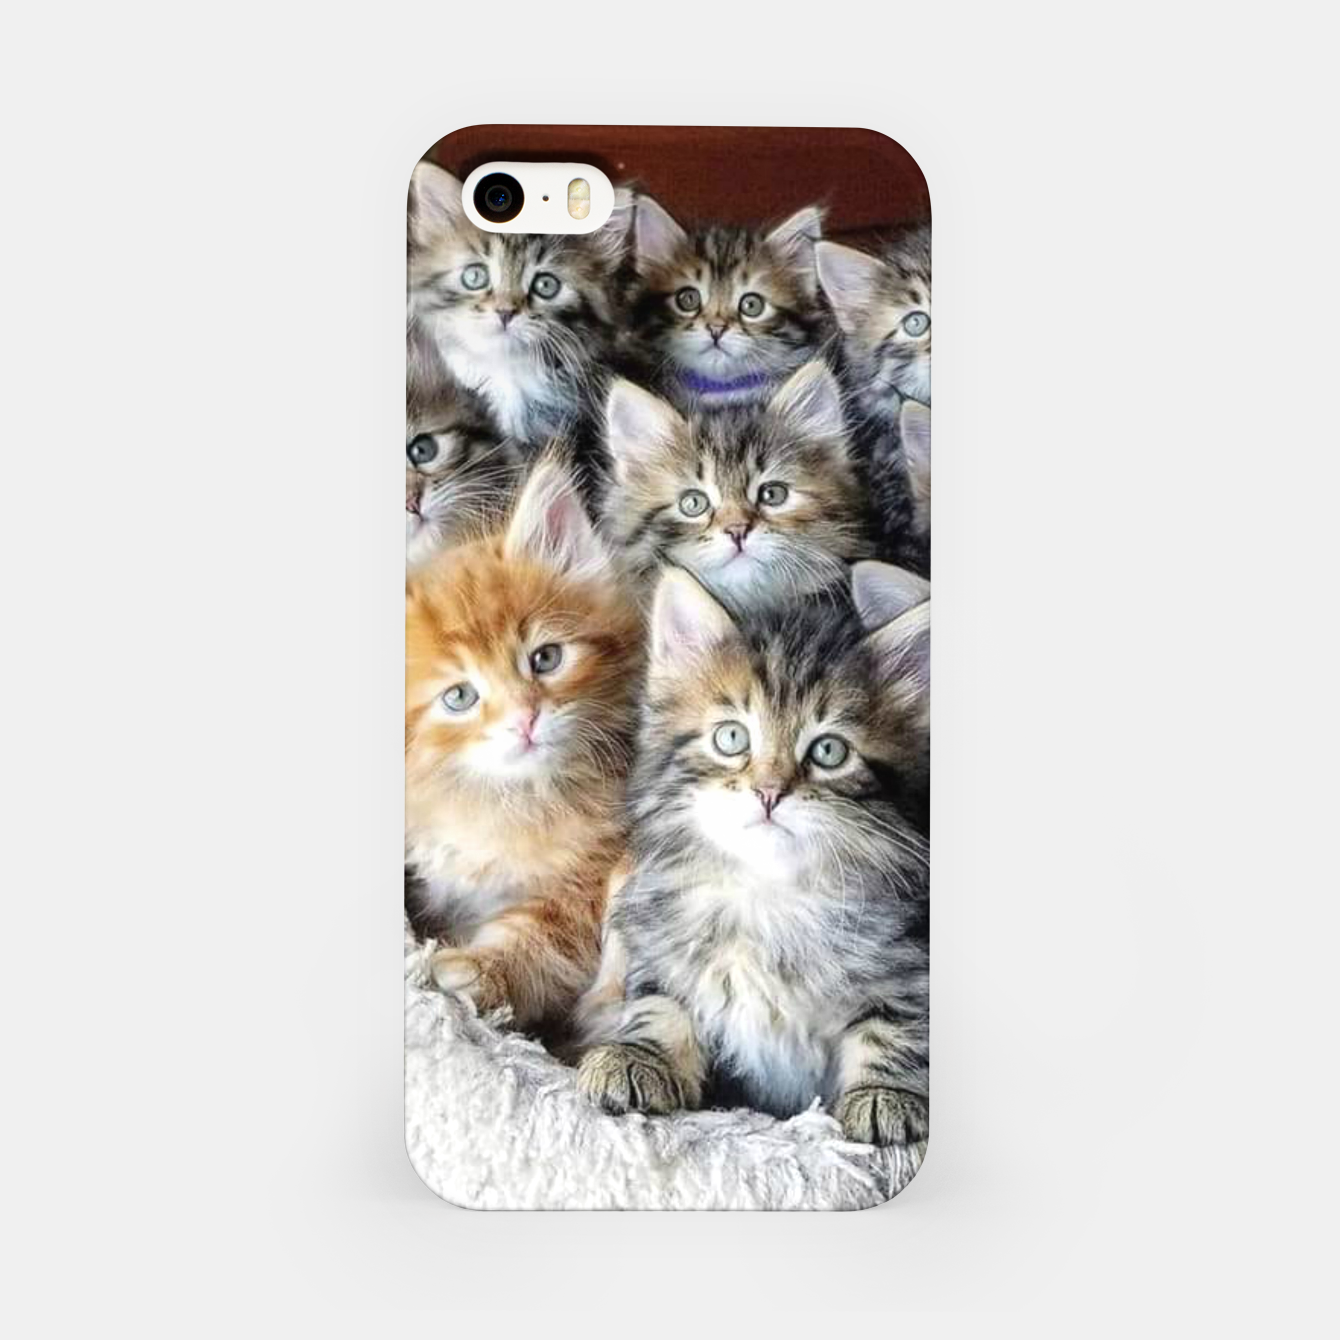 Foto Cat Kittys Best Photo New Design Women Men Girls Gift iPhone Case - Live Heroes